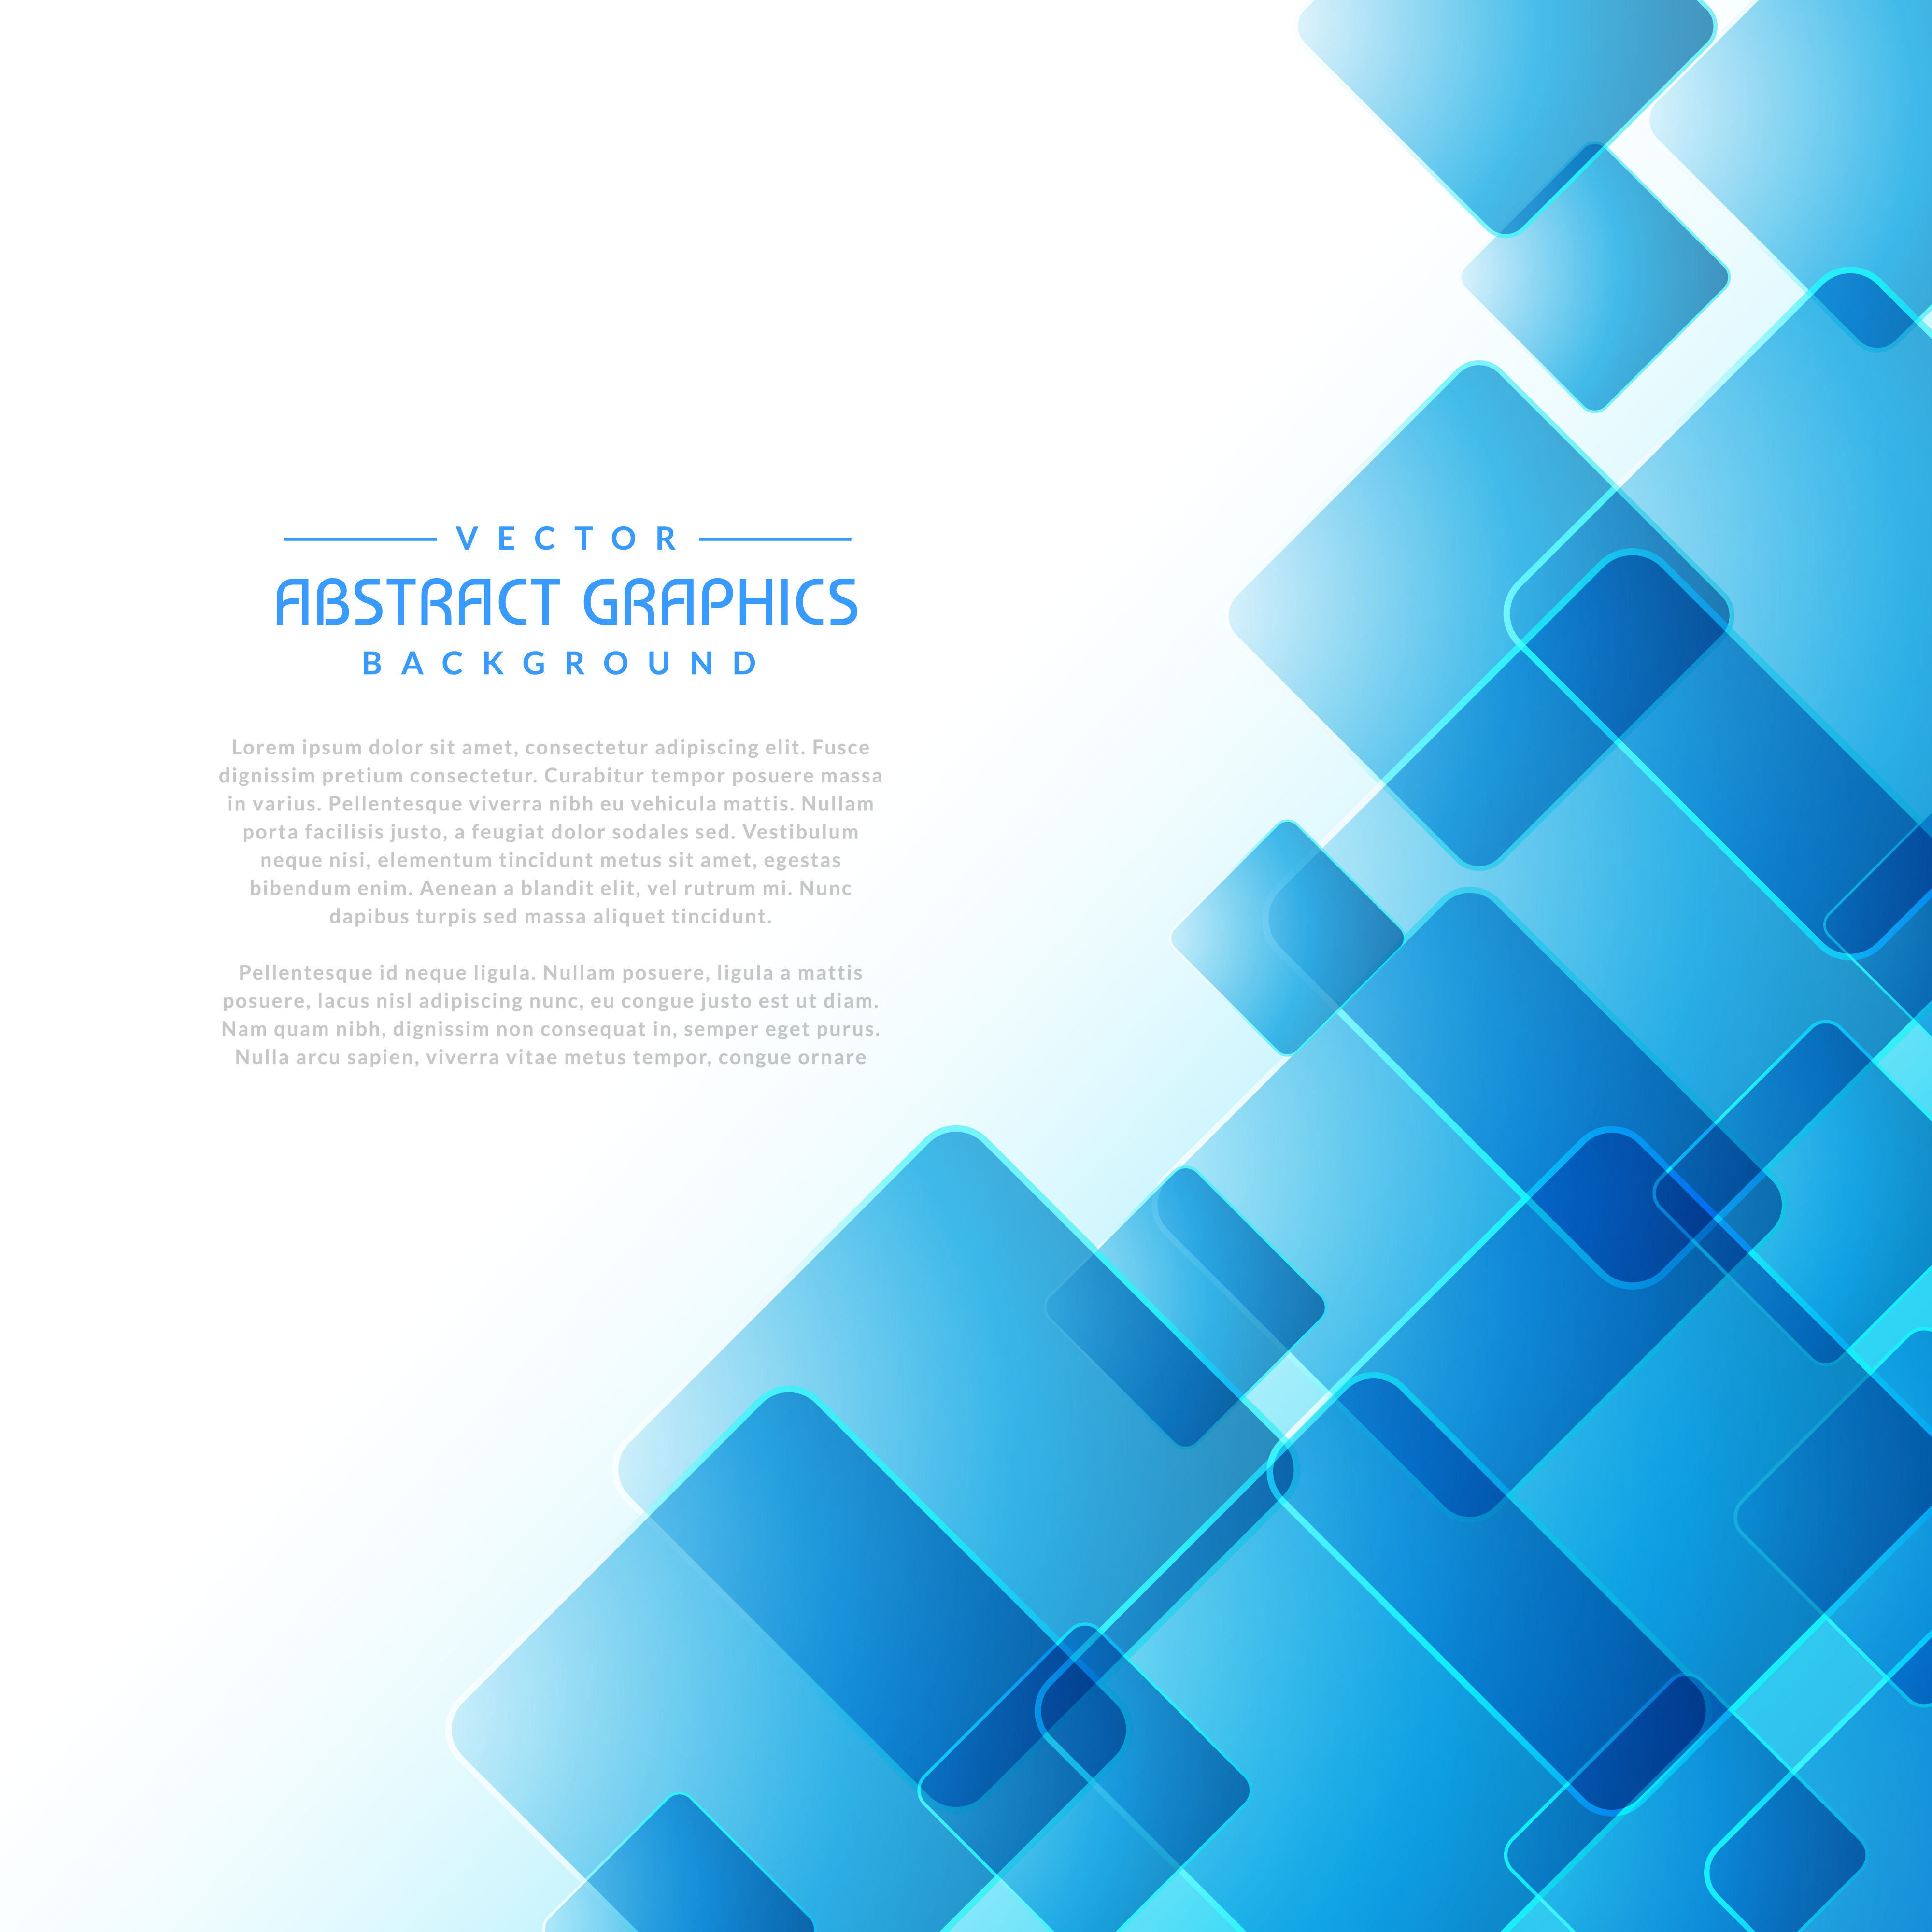 White Education Background Vector Vector Art Graphics: Abstract Background With Blue Square Shapes